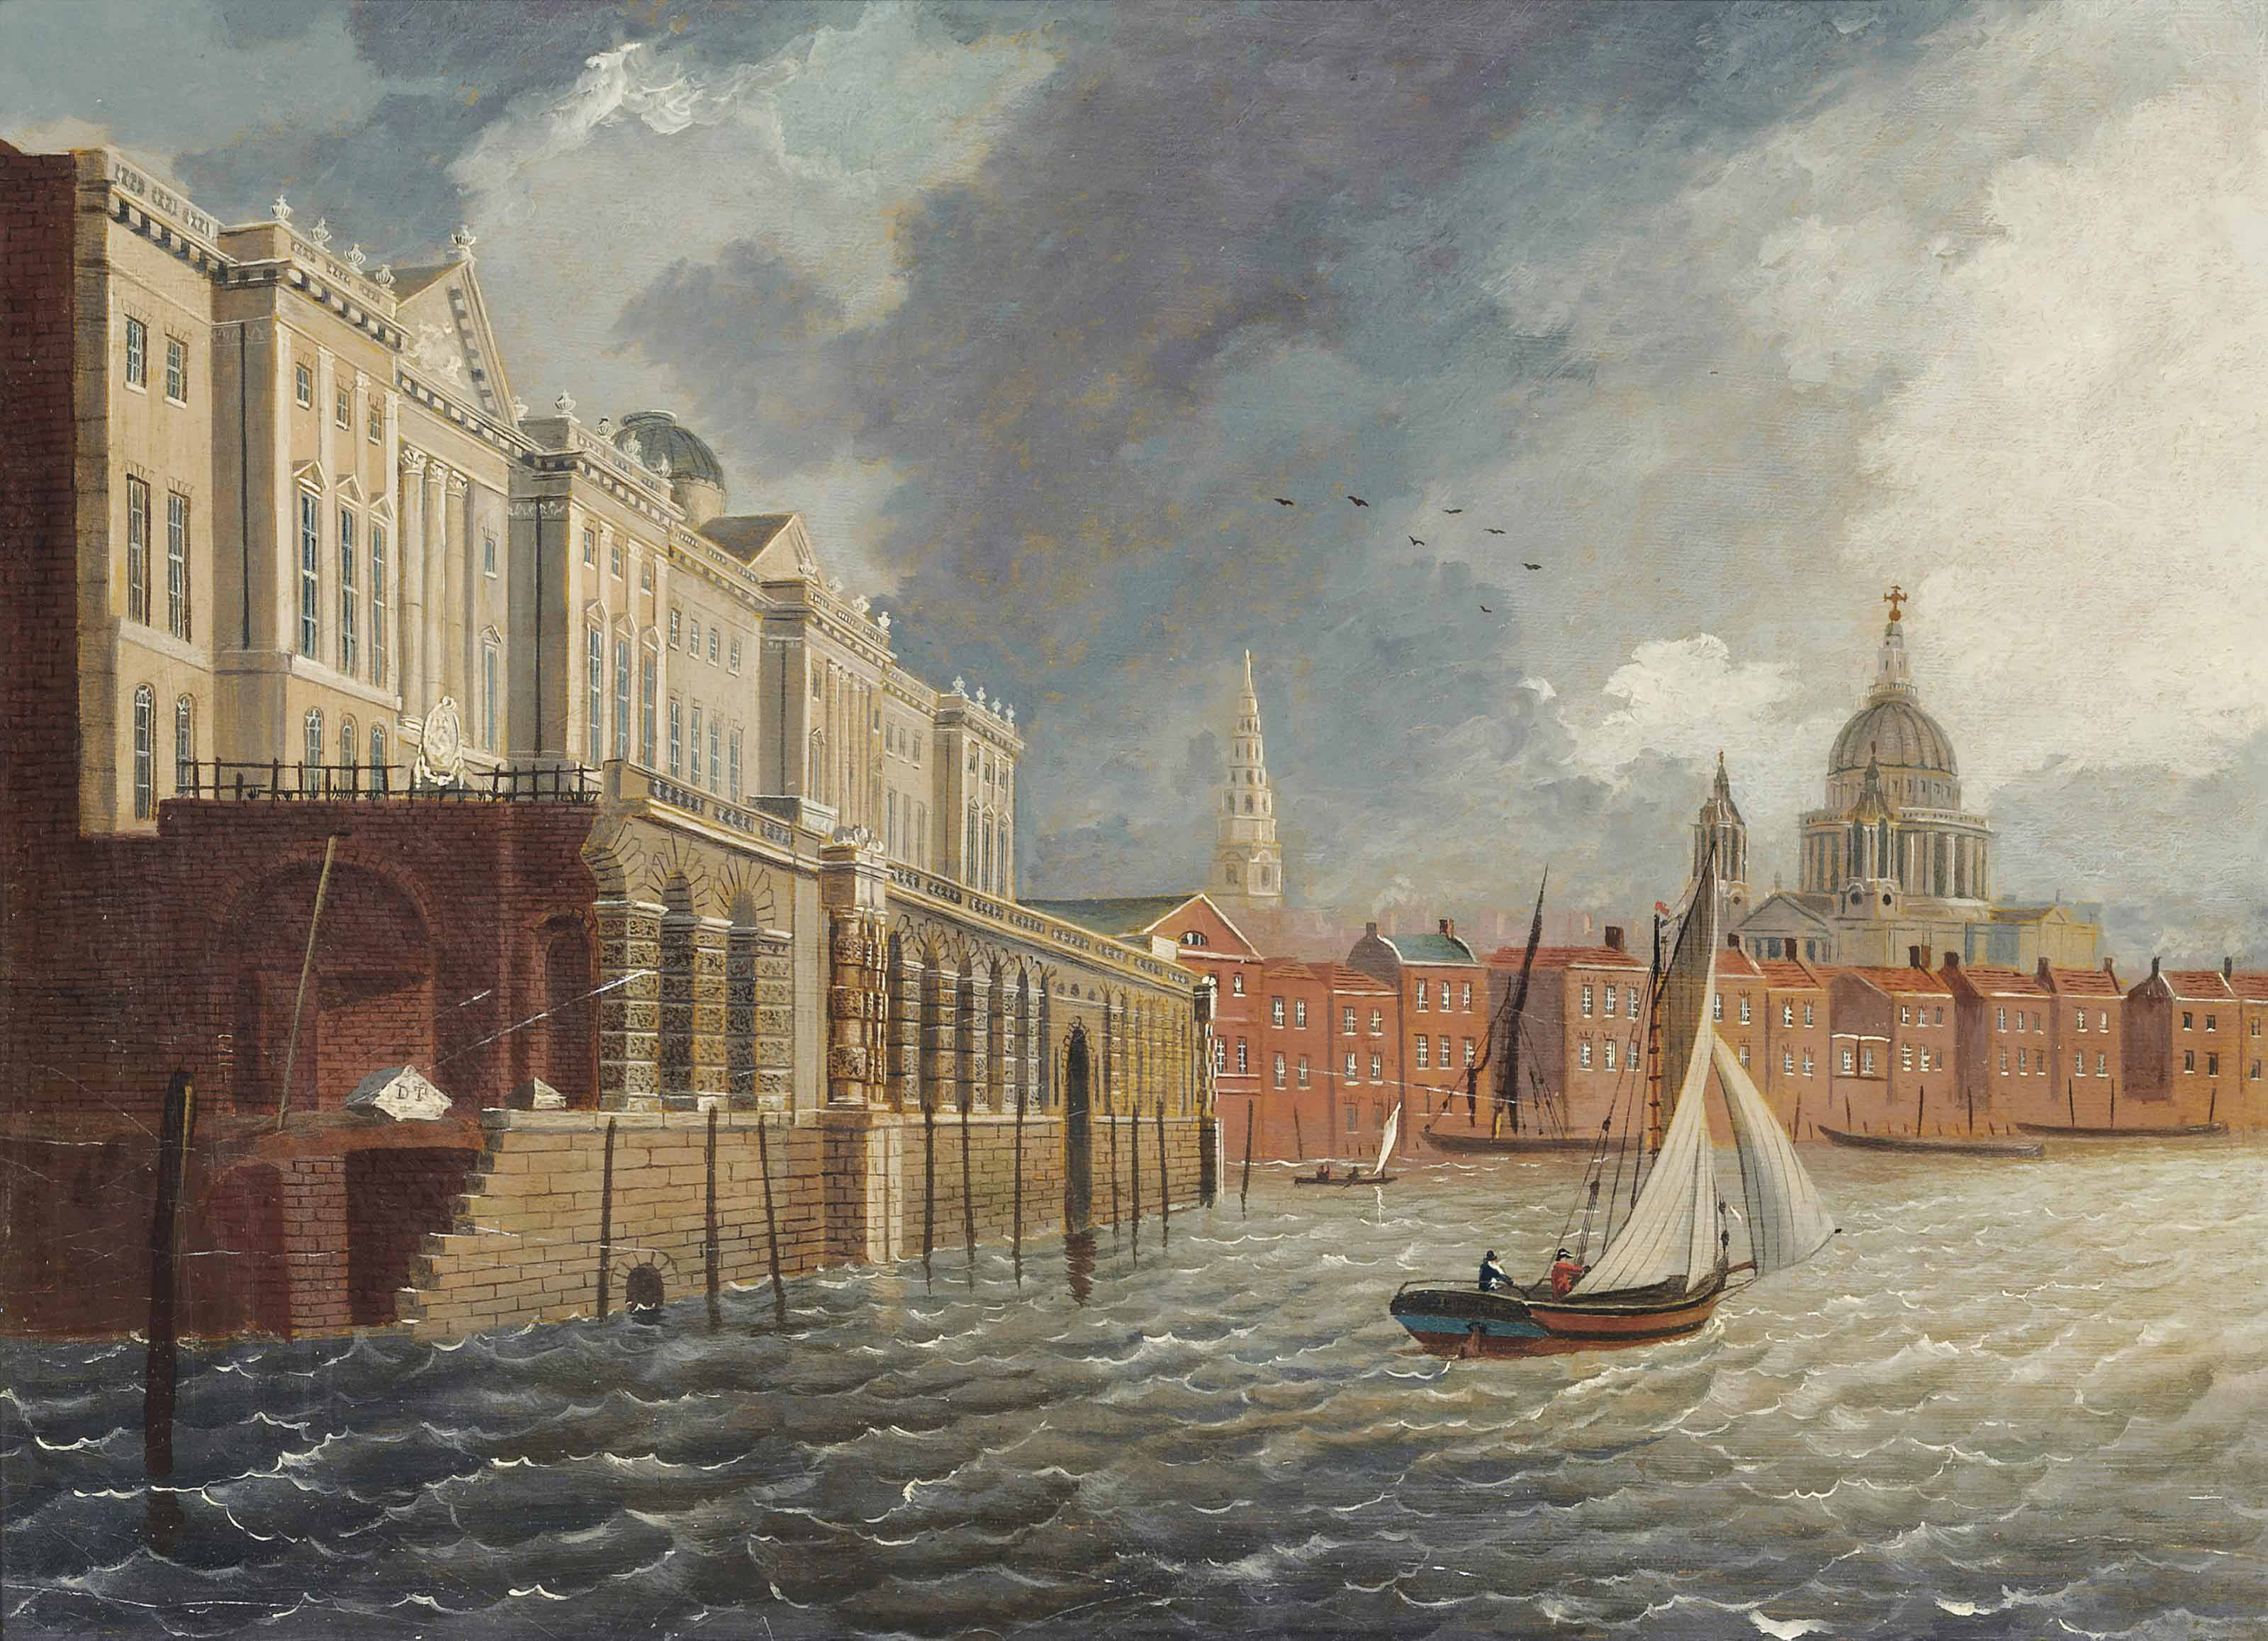 A cutter on the Thames before Somerset House, with the dome of St. Paul's Cathedral seen in the distance